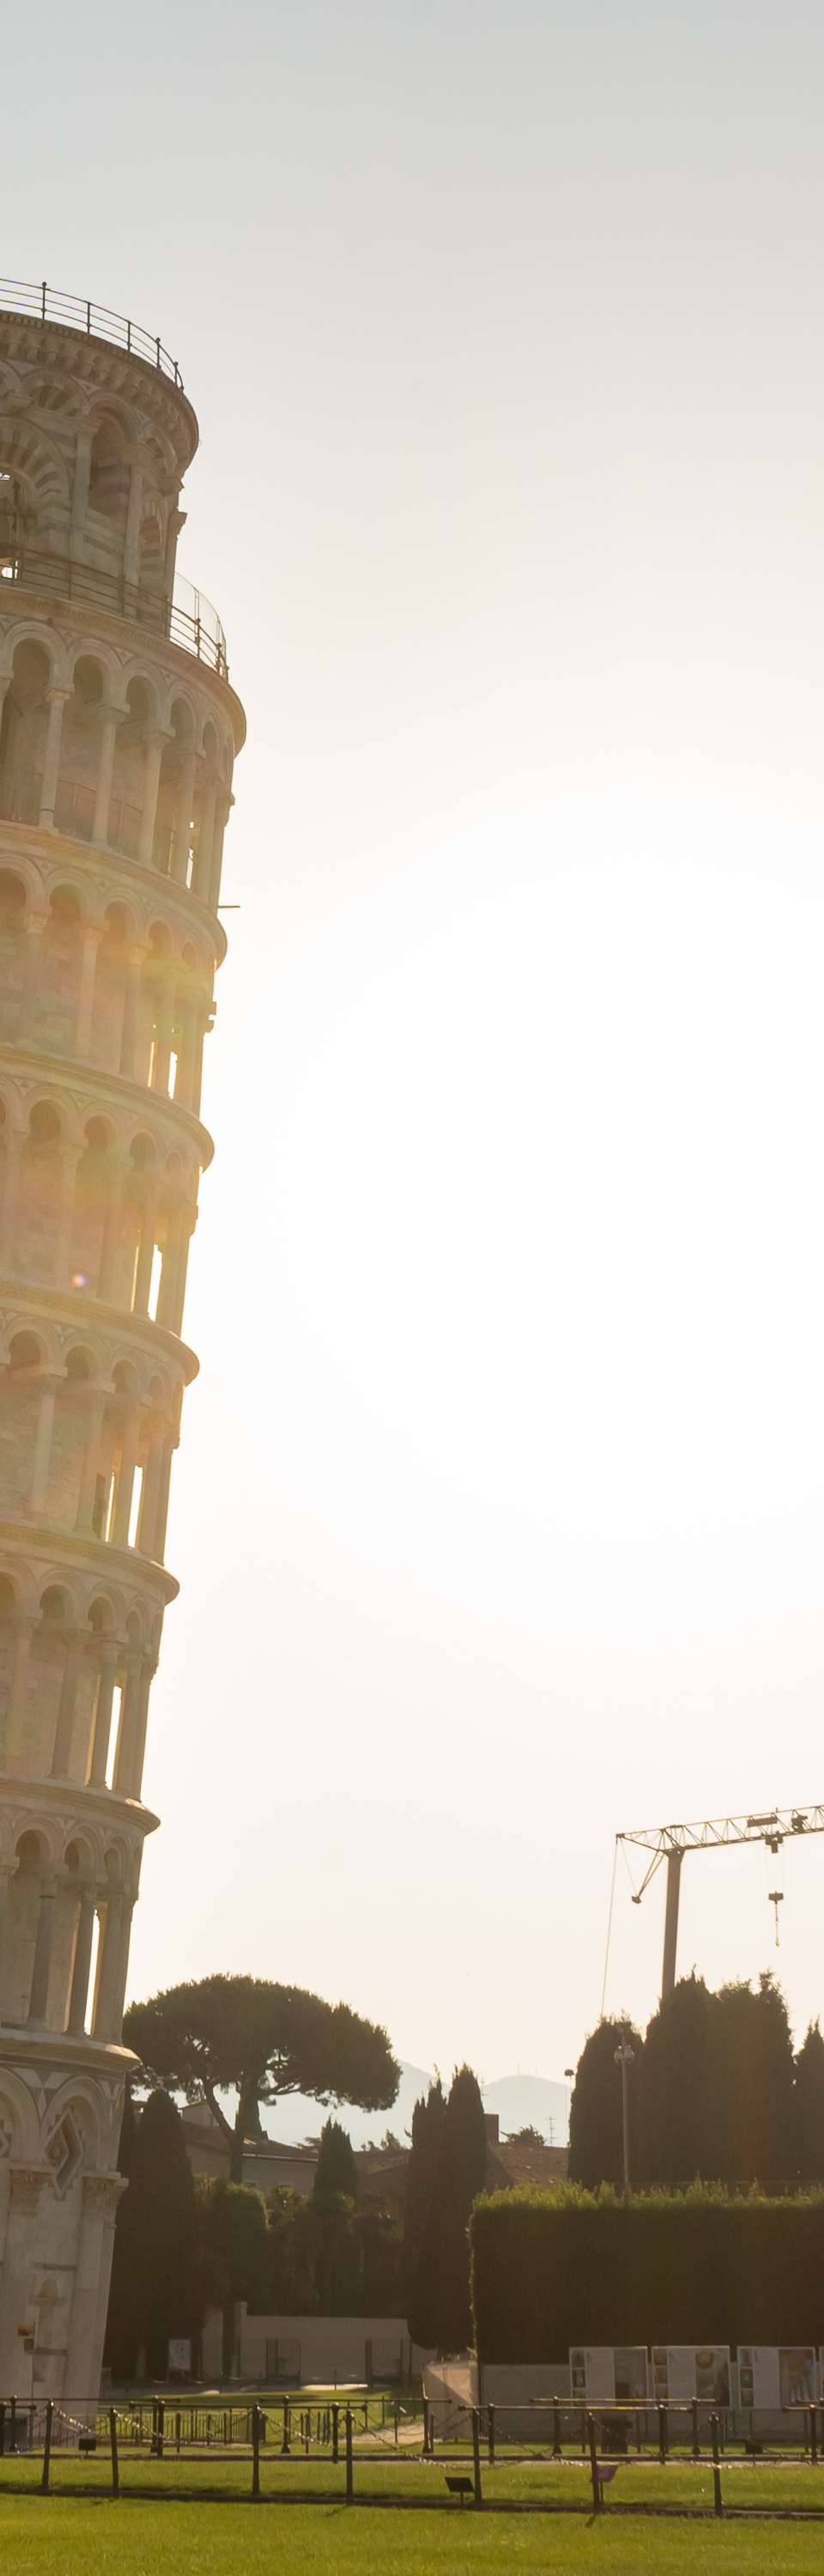 The Leaning Tower of Pisa with the sun setting behind it